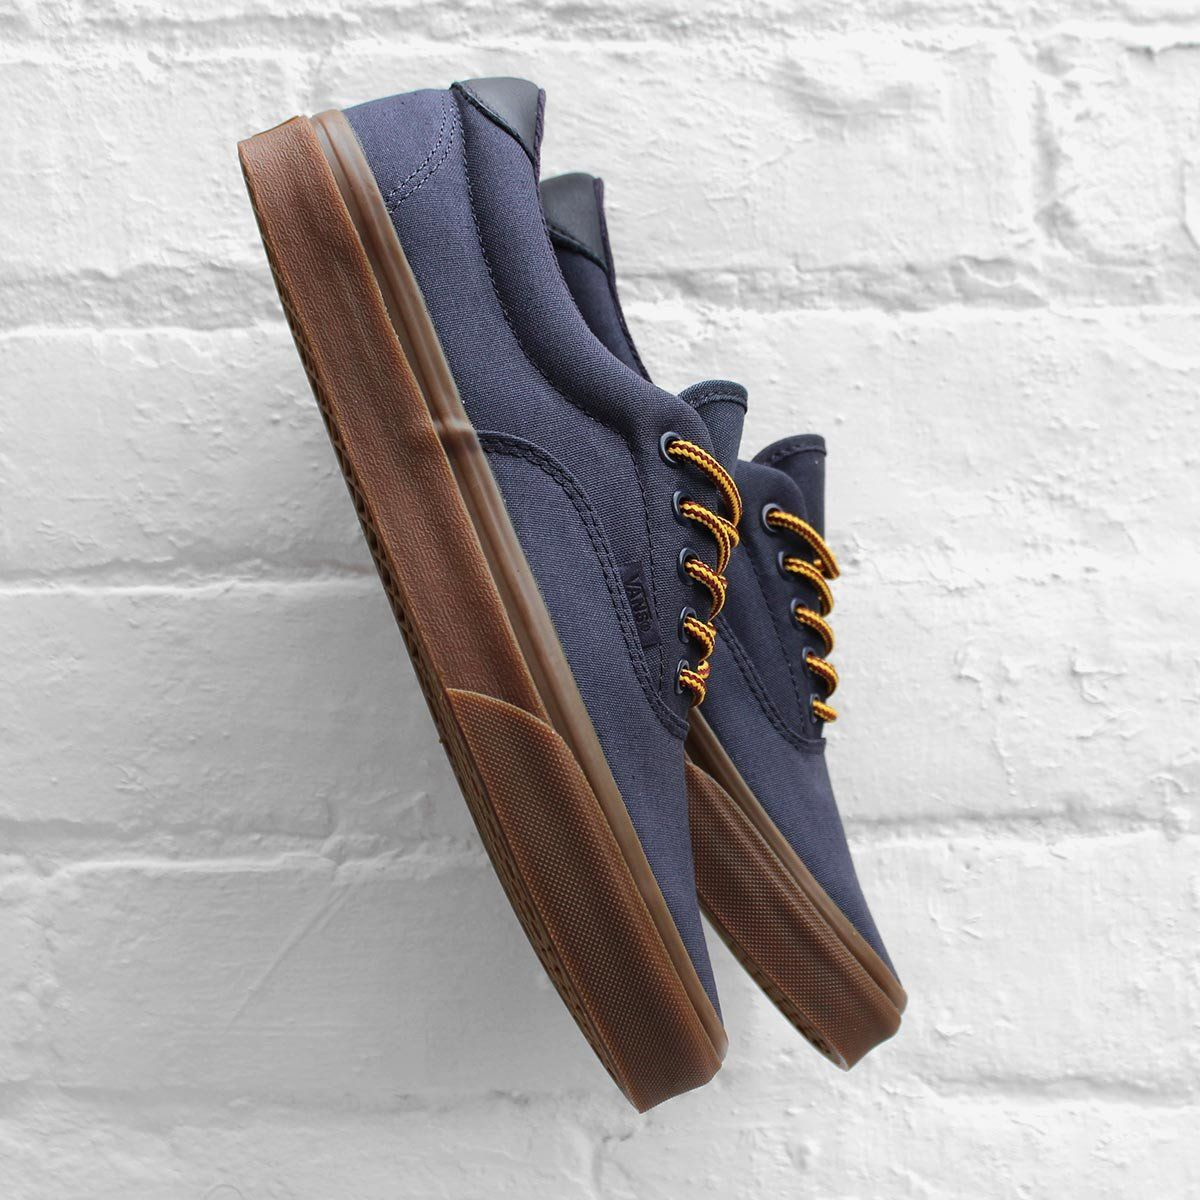 The low top lace-up skate shoe has been recreated for the new season with  sturdy double-stitched canvas uppers with metal eyelets, leather heel  detail.